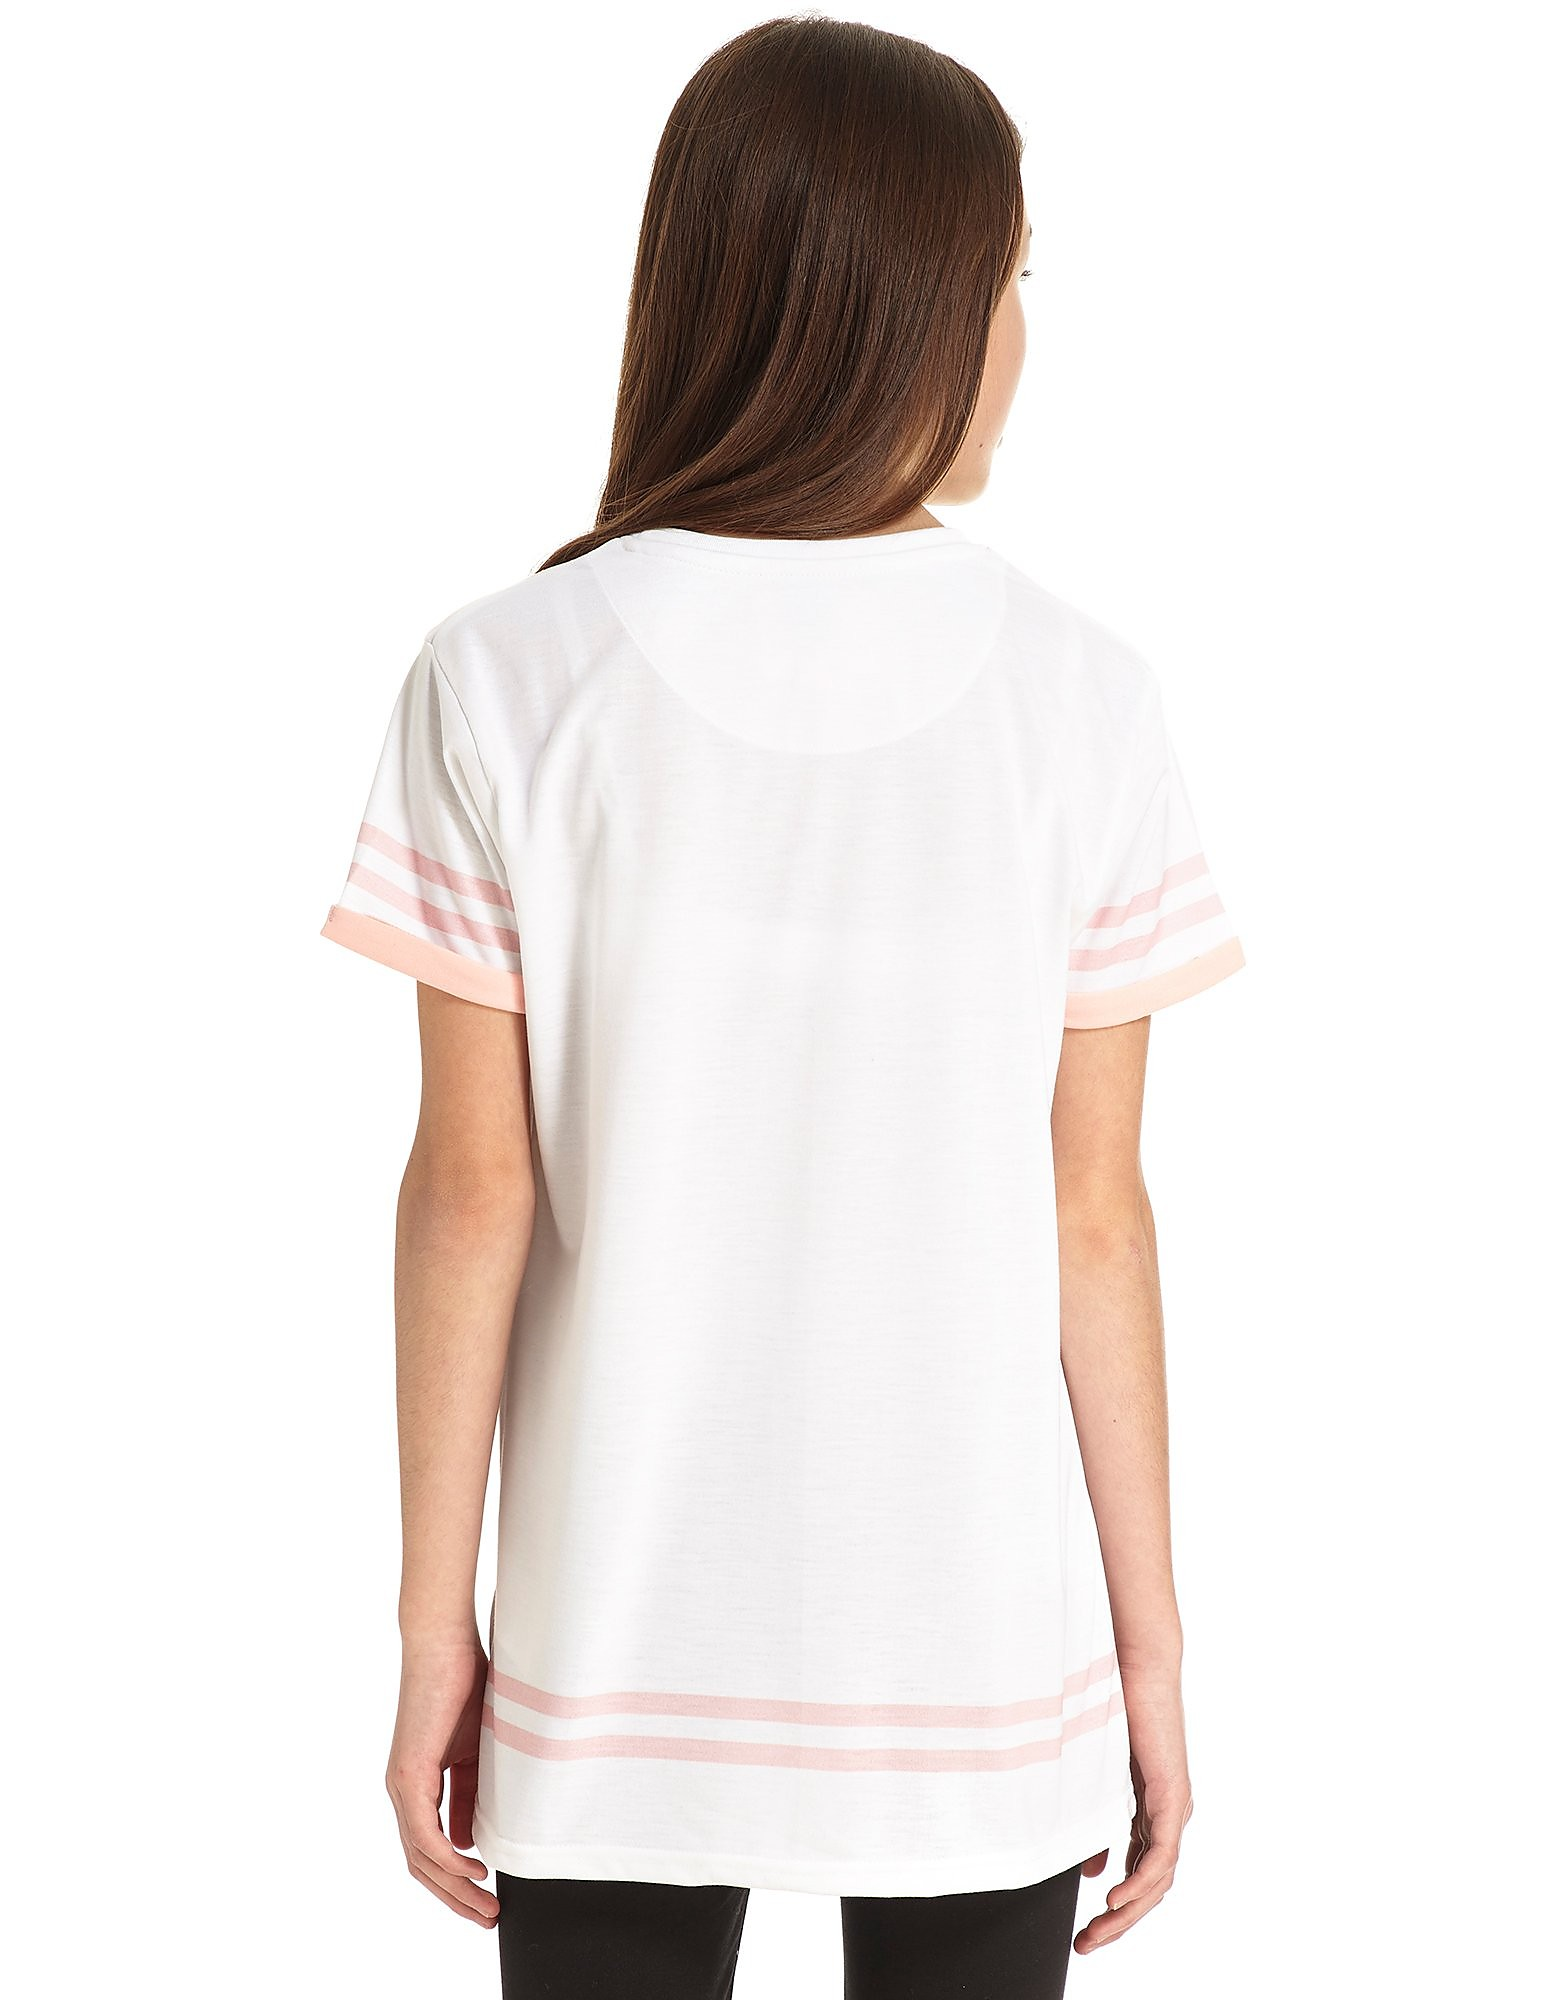 McKenzie Girls' Charlotte T-Shirt Junior